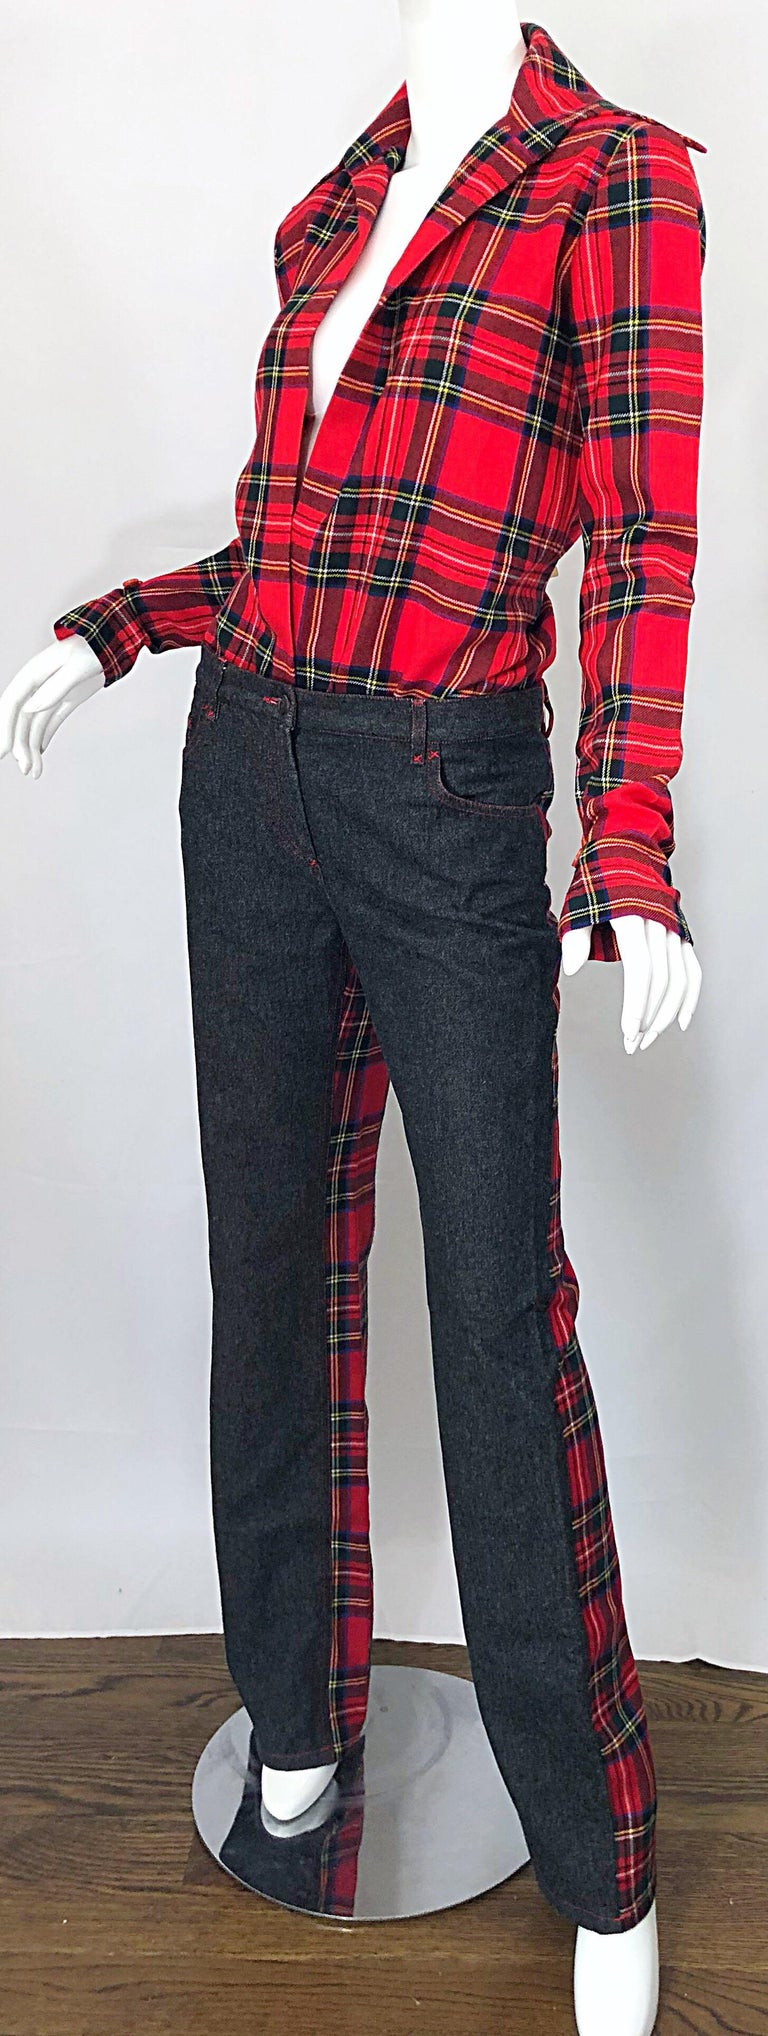 Rare 1990s Dolce & Gabbana Red Tartan Plaid Wool + Denim Flared Jeans and Shirt For Sale 3